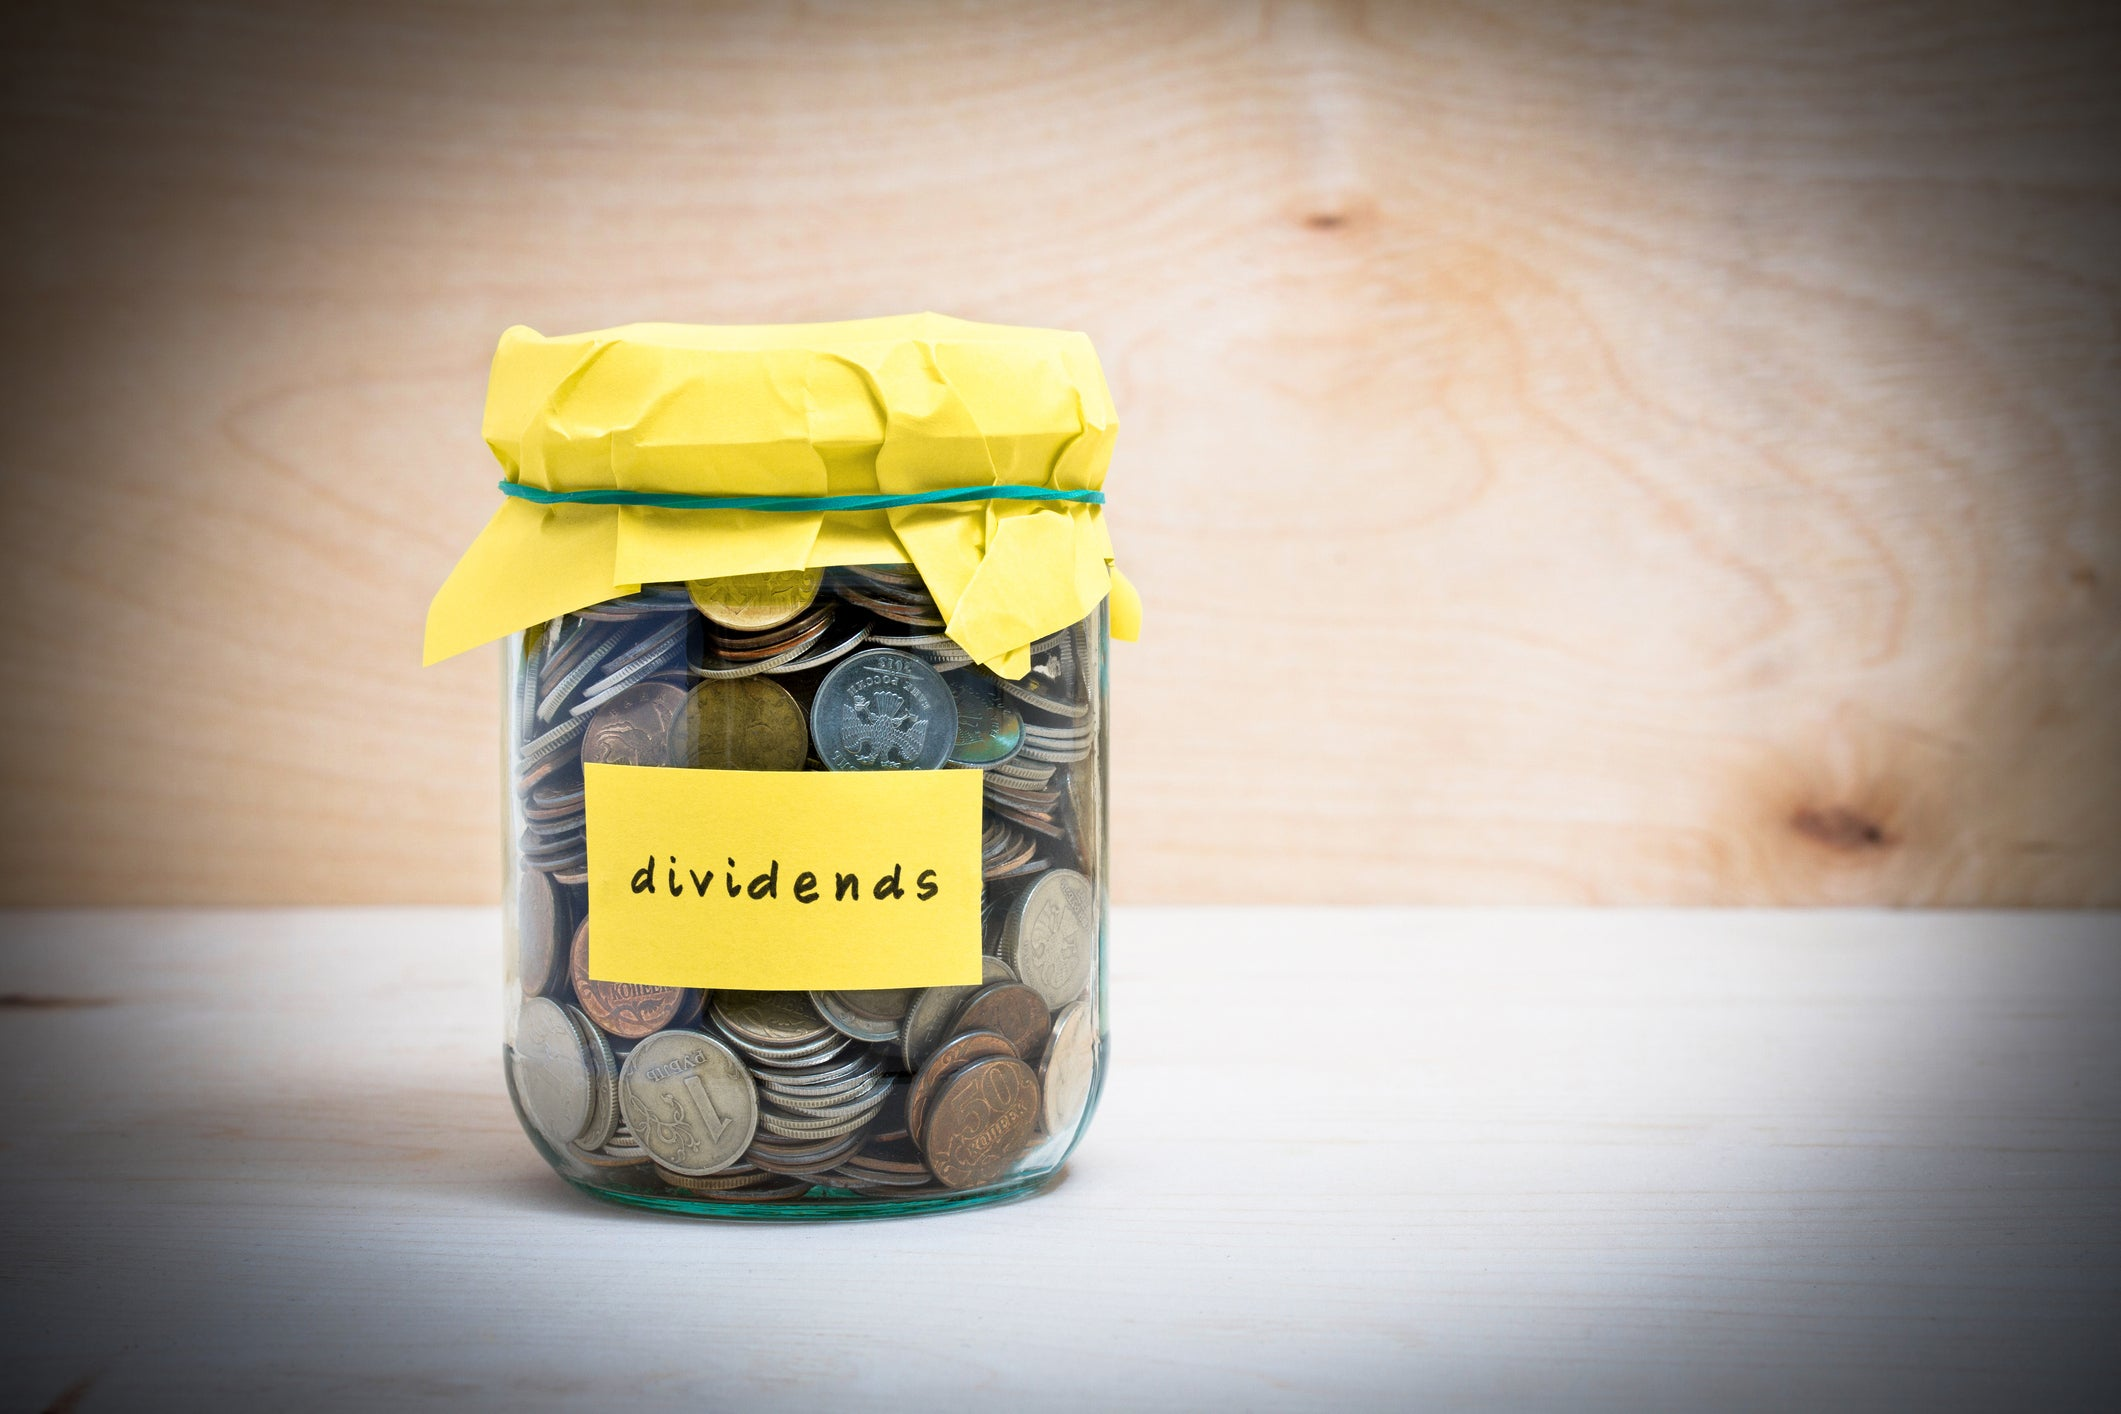 A jar full of change labeled dividends.